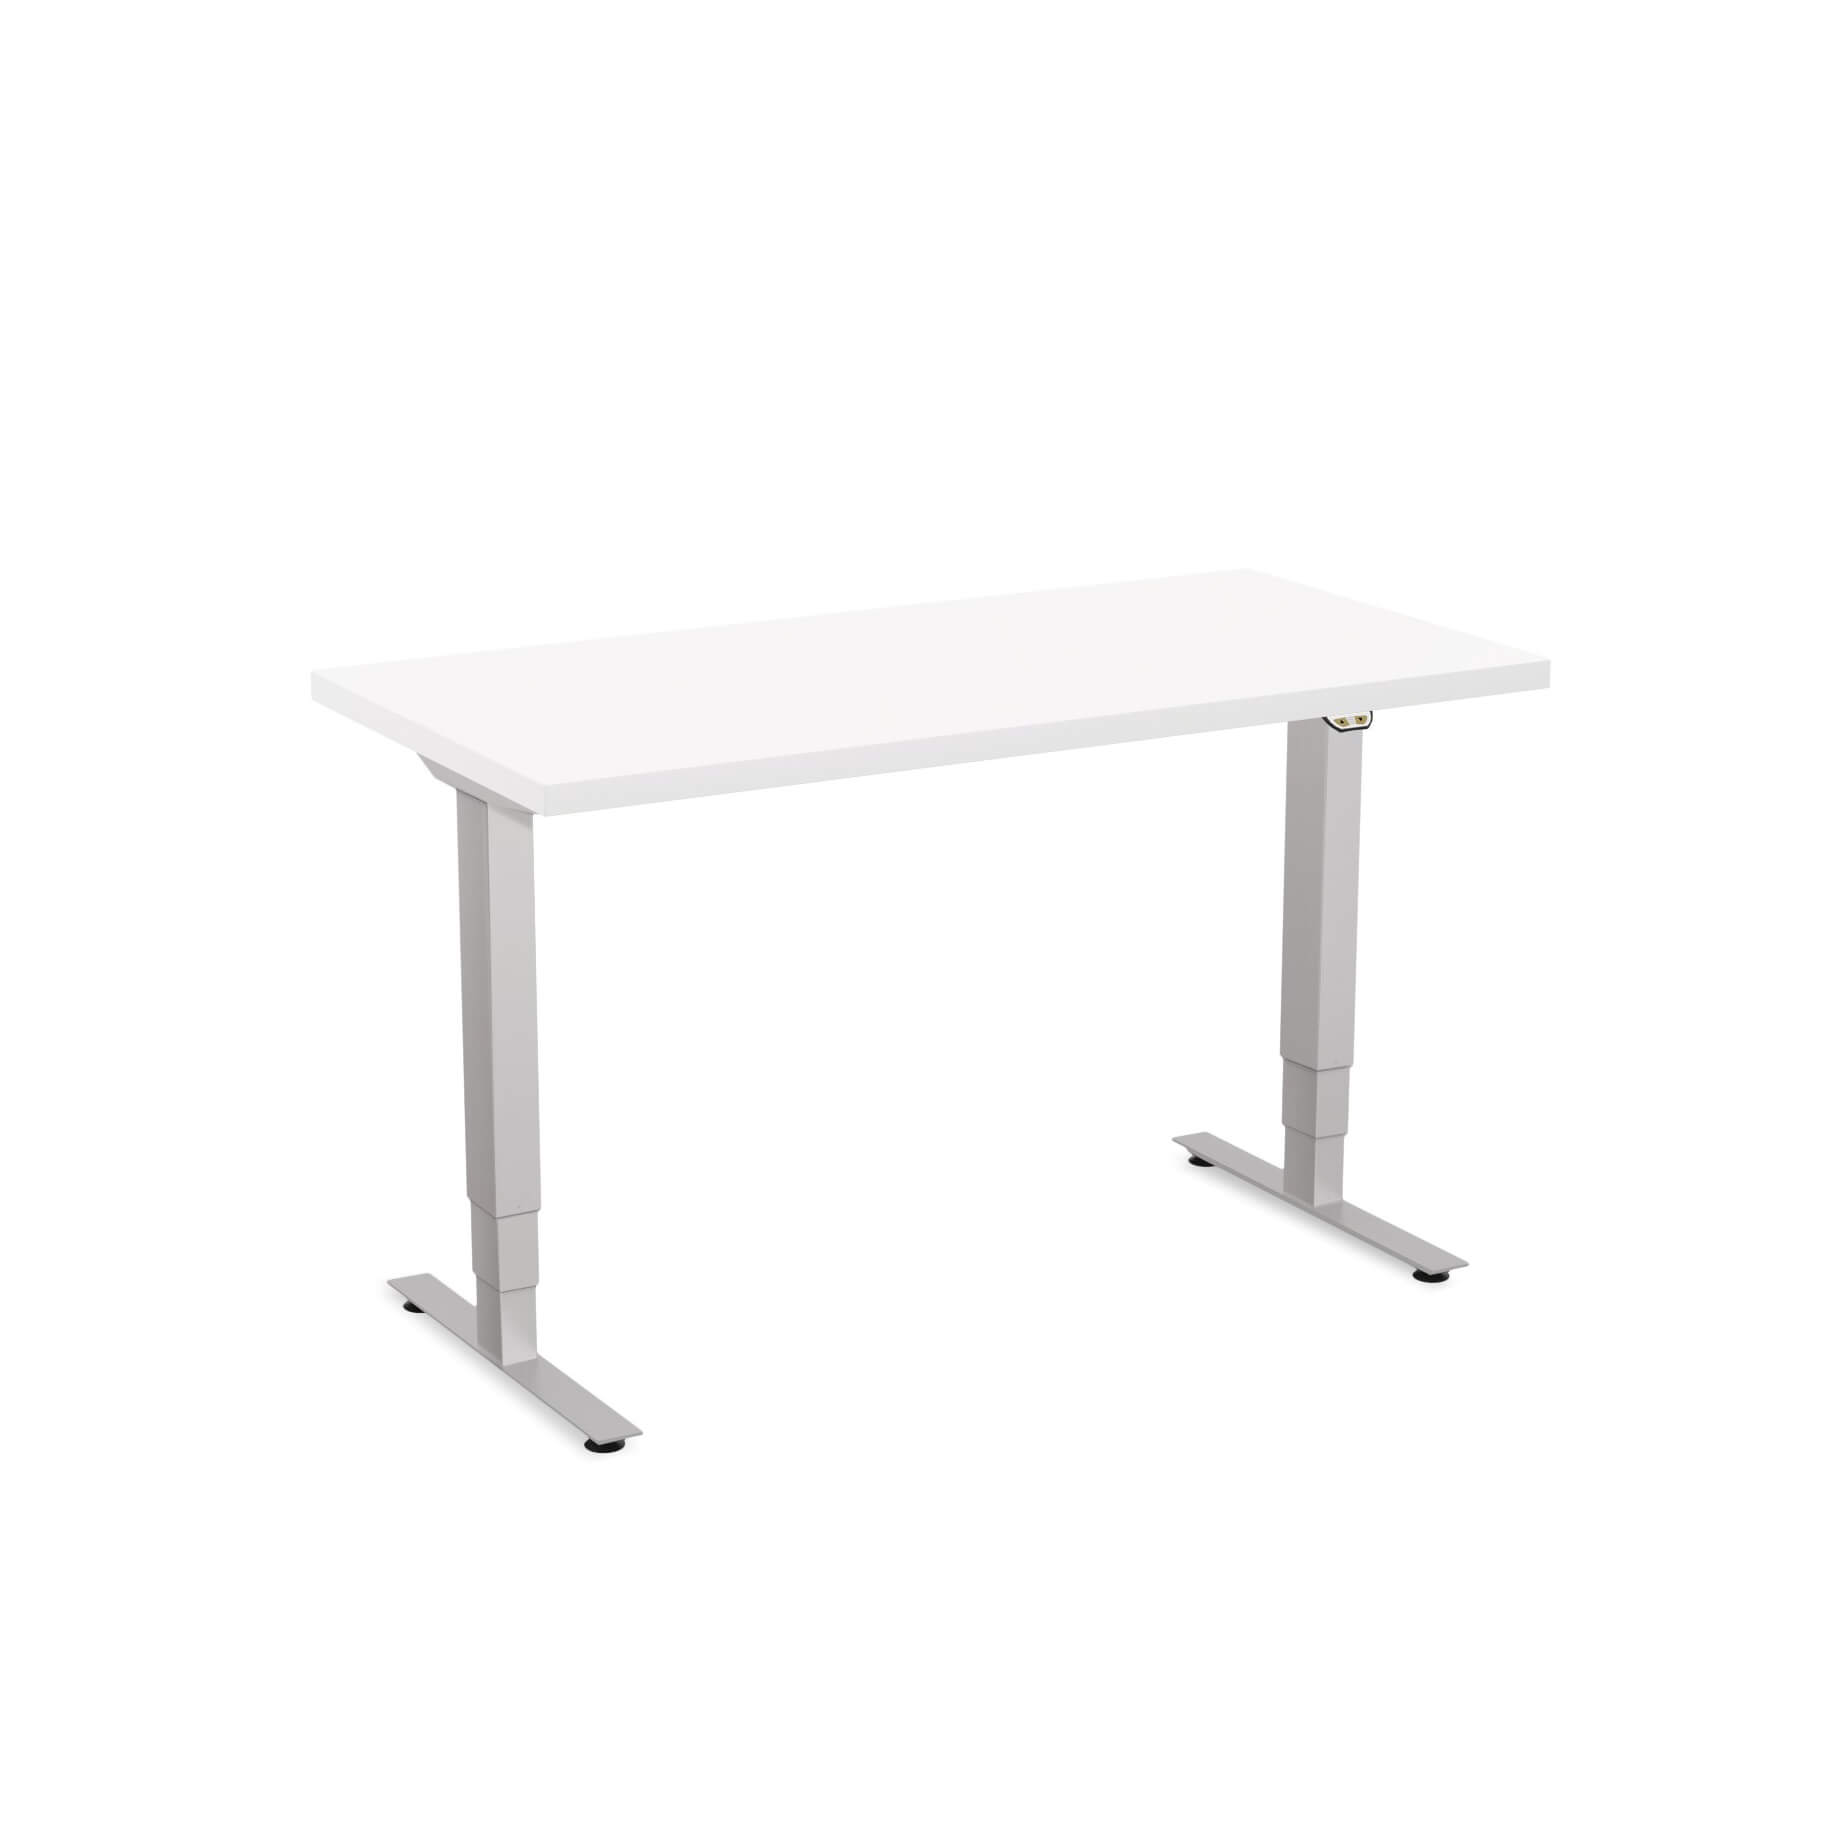 Sit stand desk adjustable CUB 1D PATR 2448 WH EPS 1